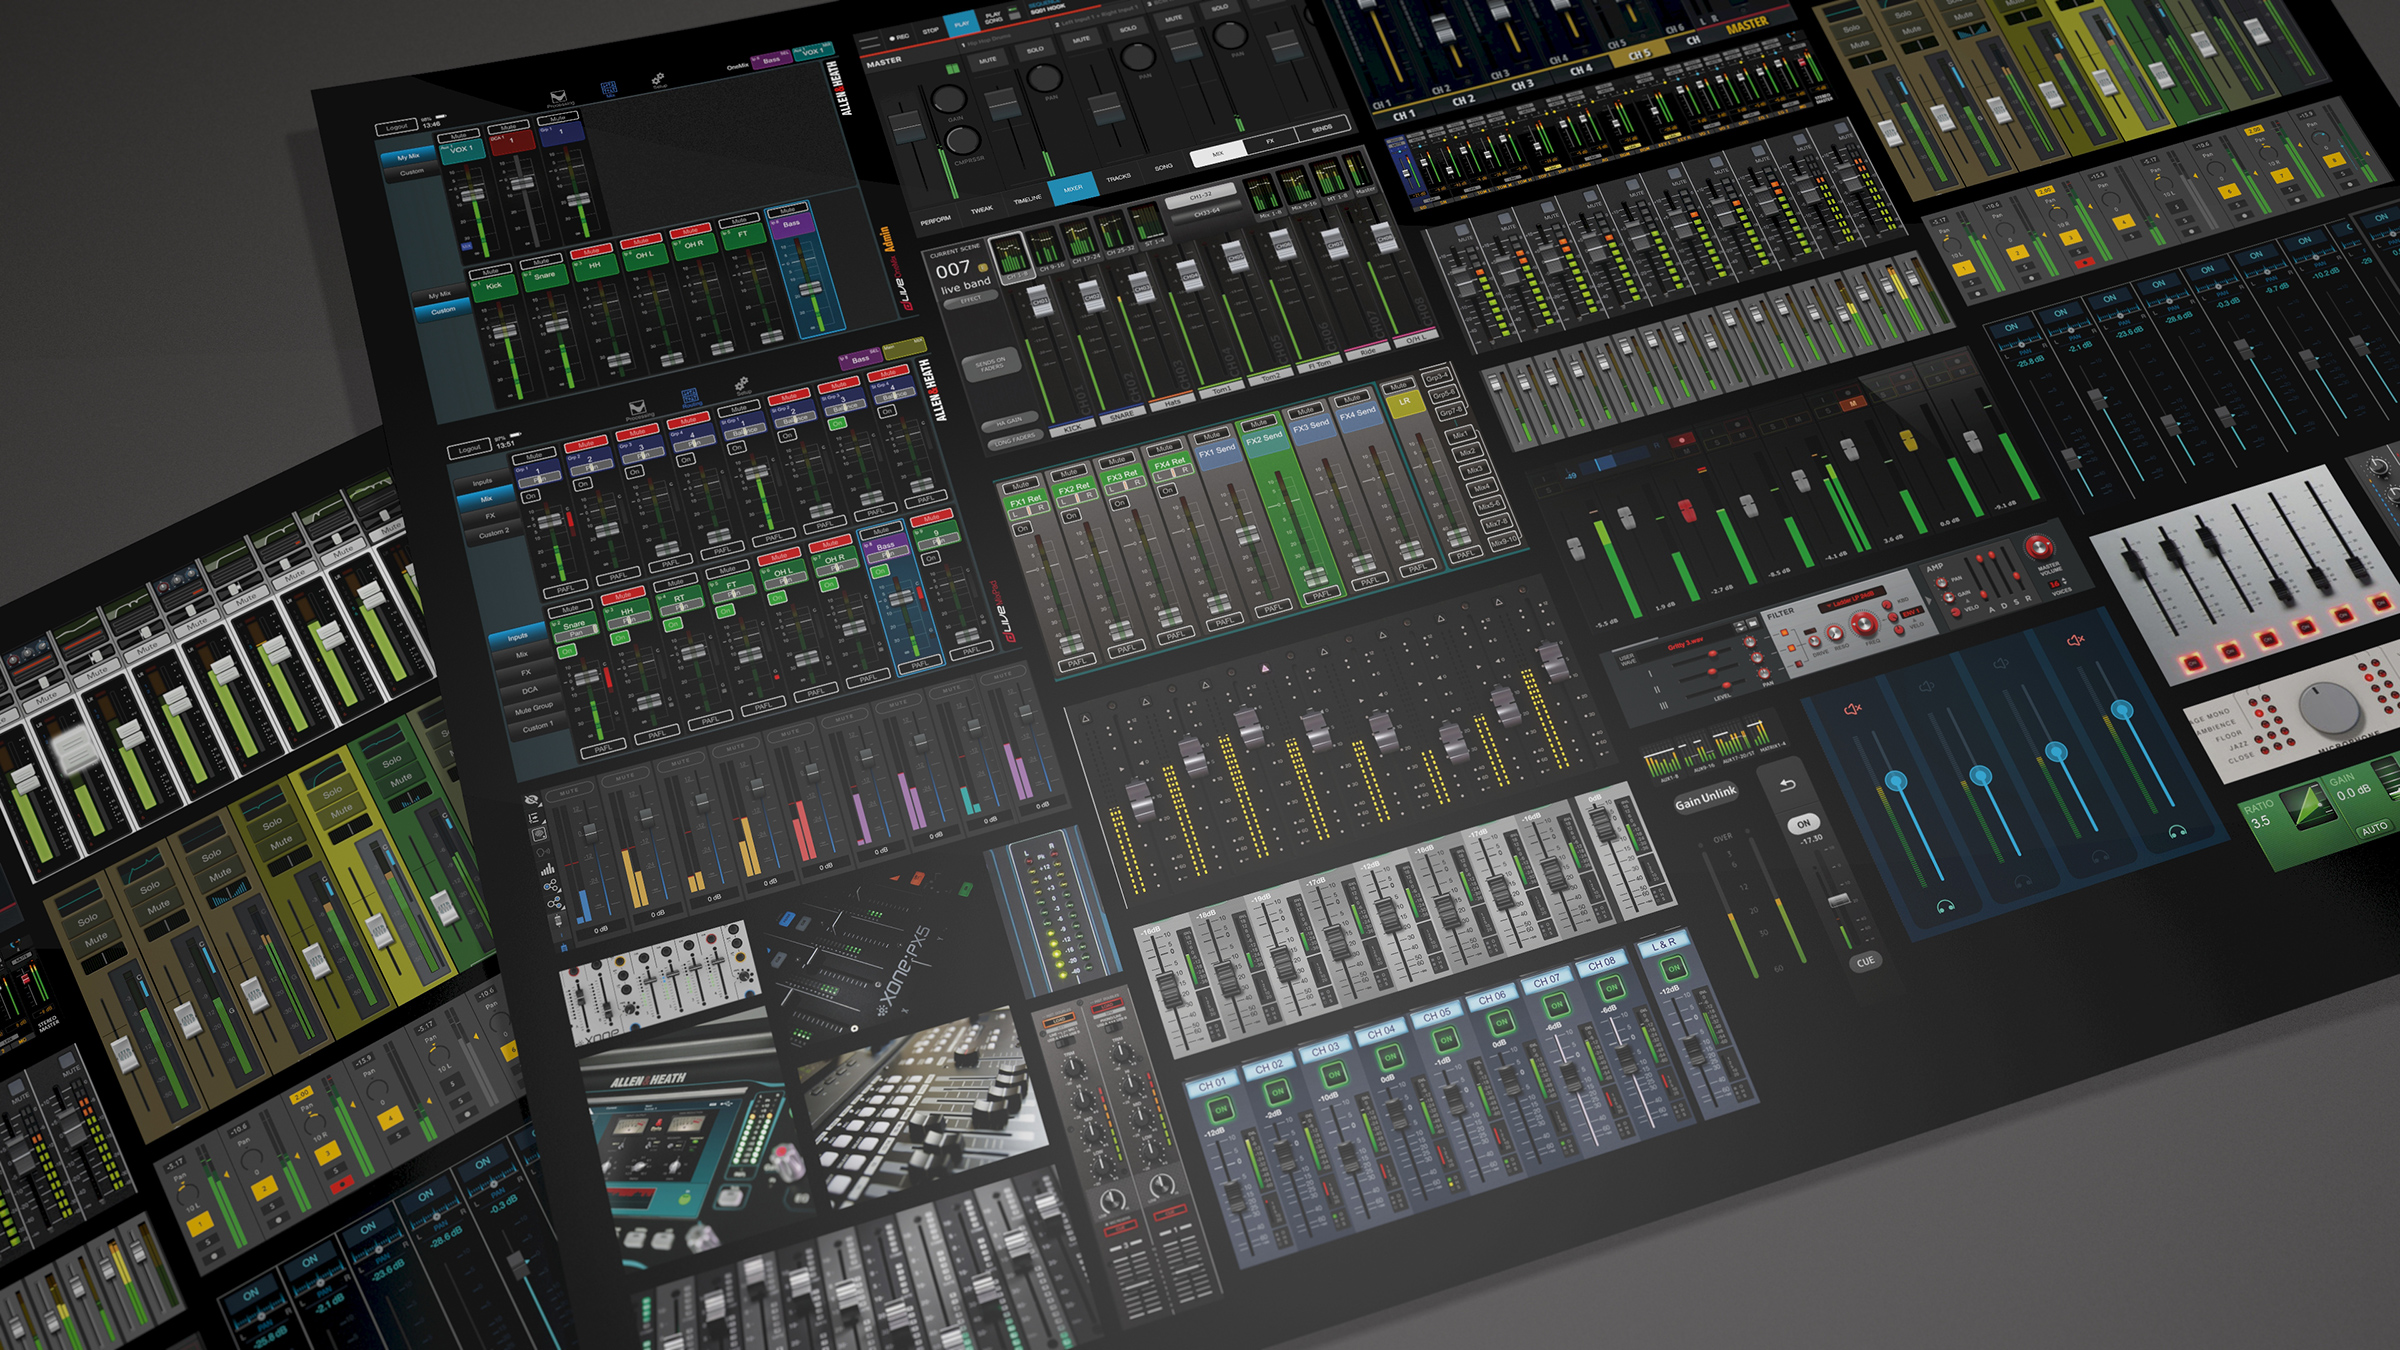 We delved deep into the controller software space analysing a wealth of sliders, faders and buttons.